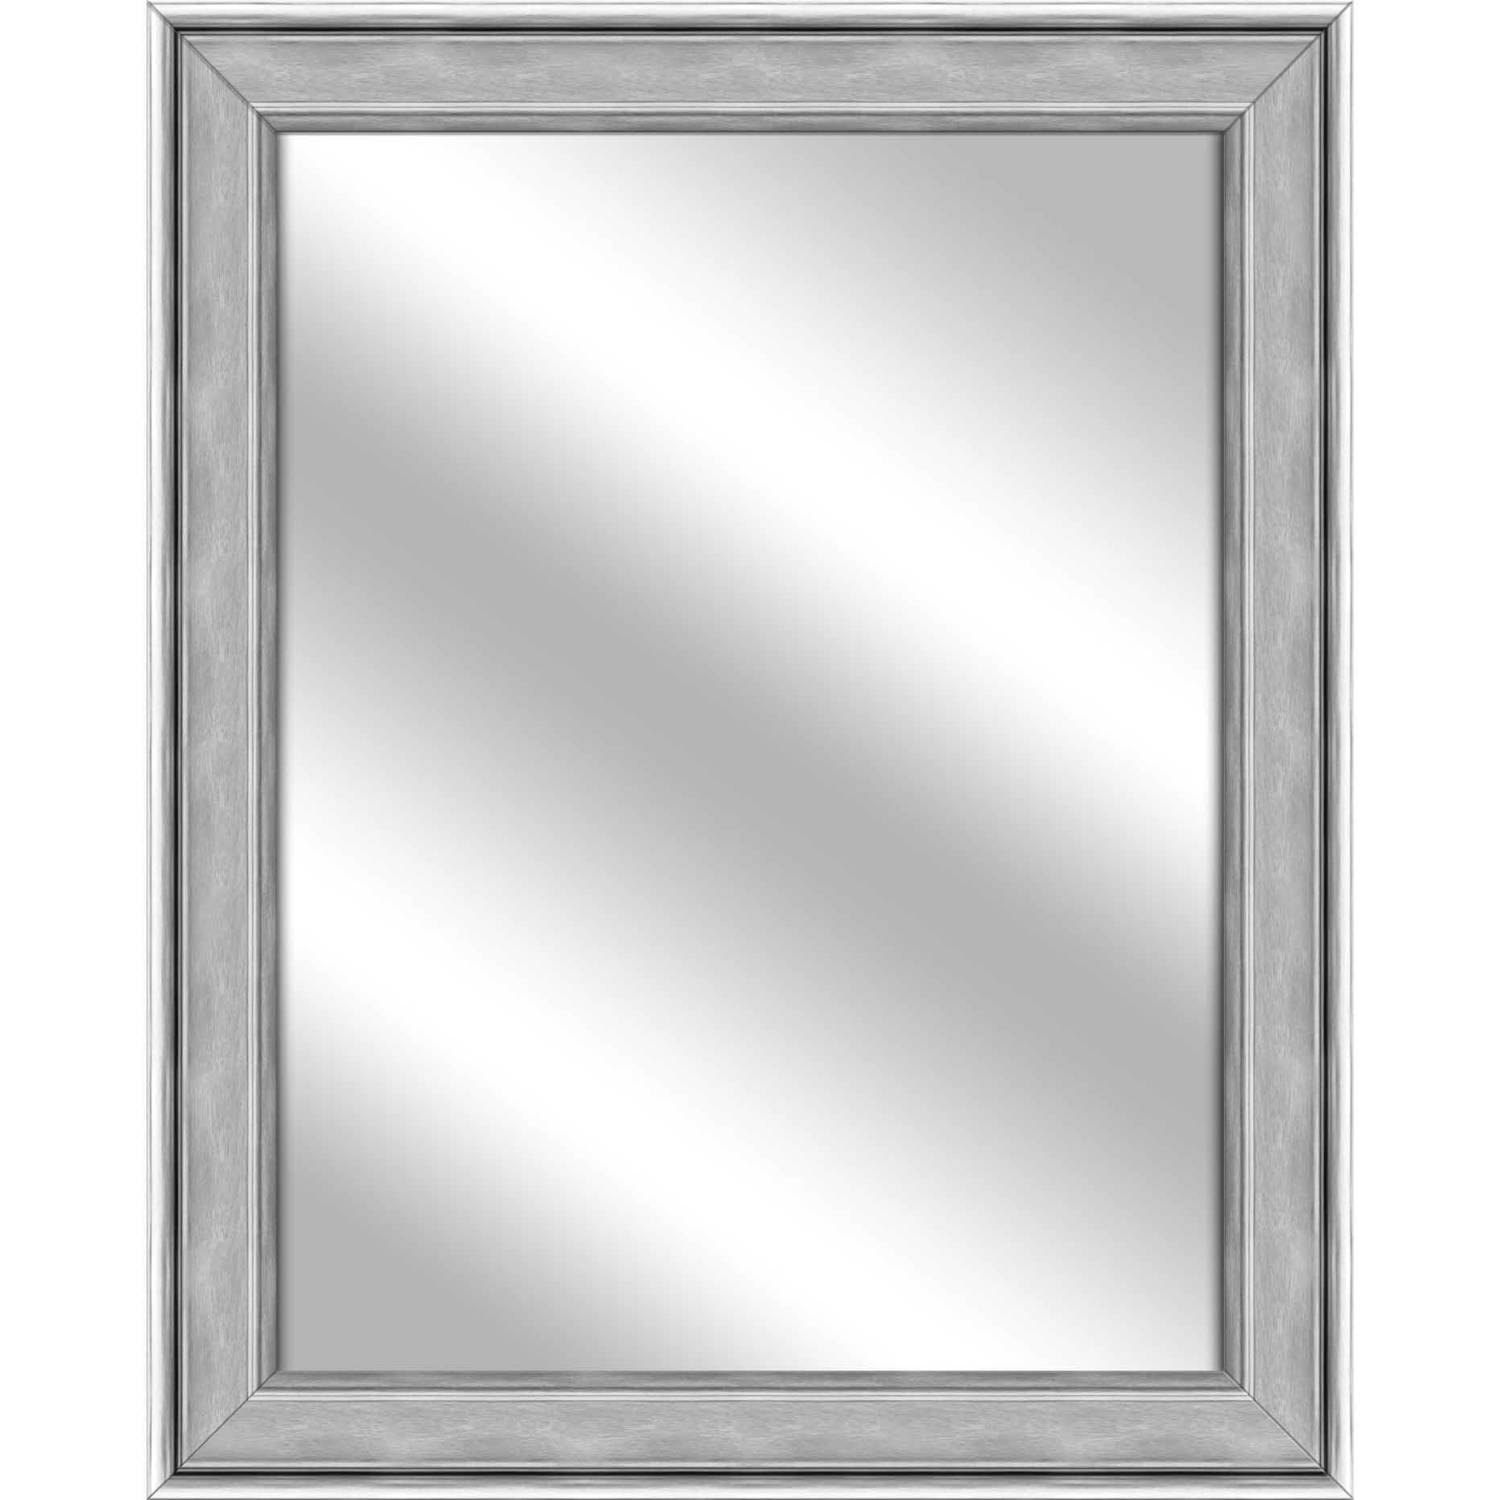 Vanity Mirror, Stainless Silver, 26.75x32.75 by PTM Images